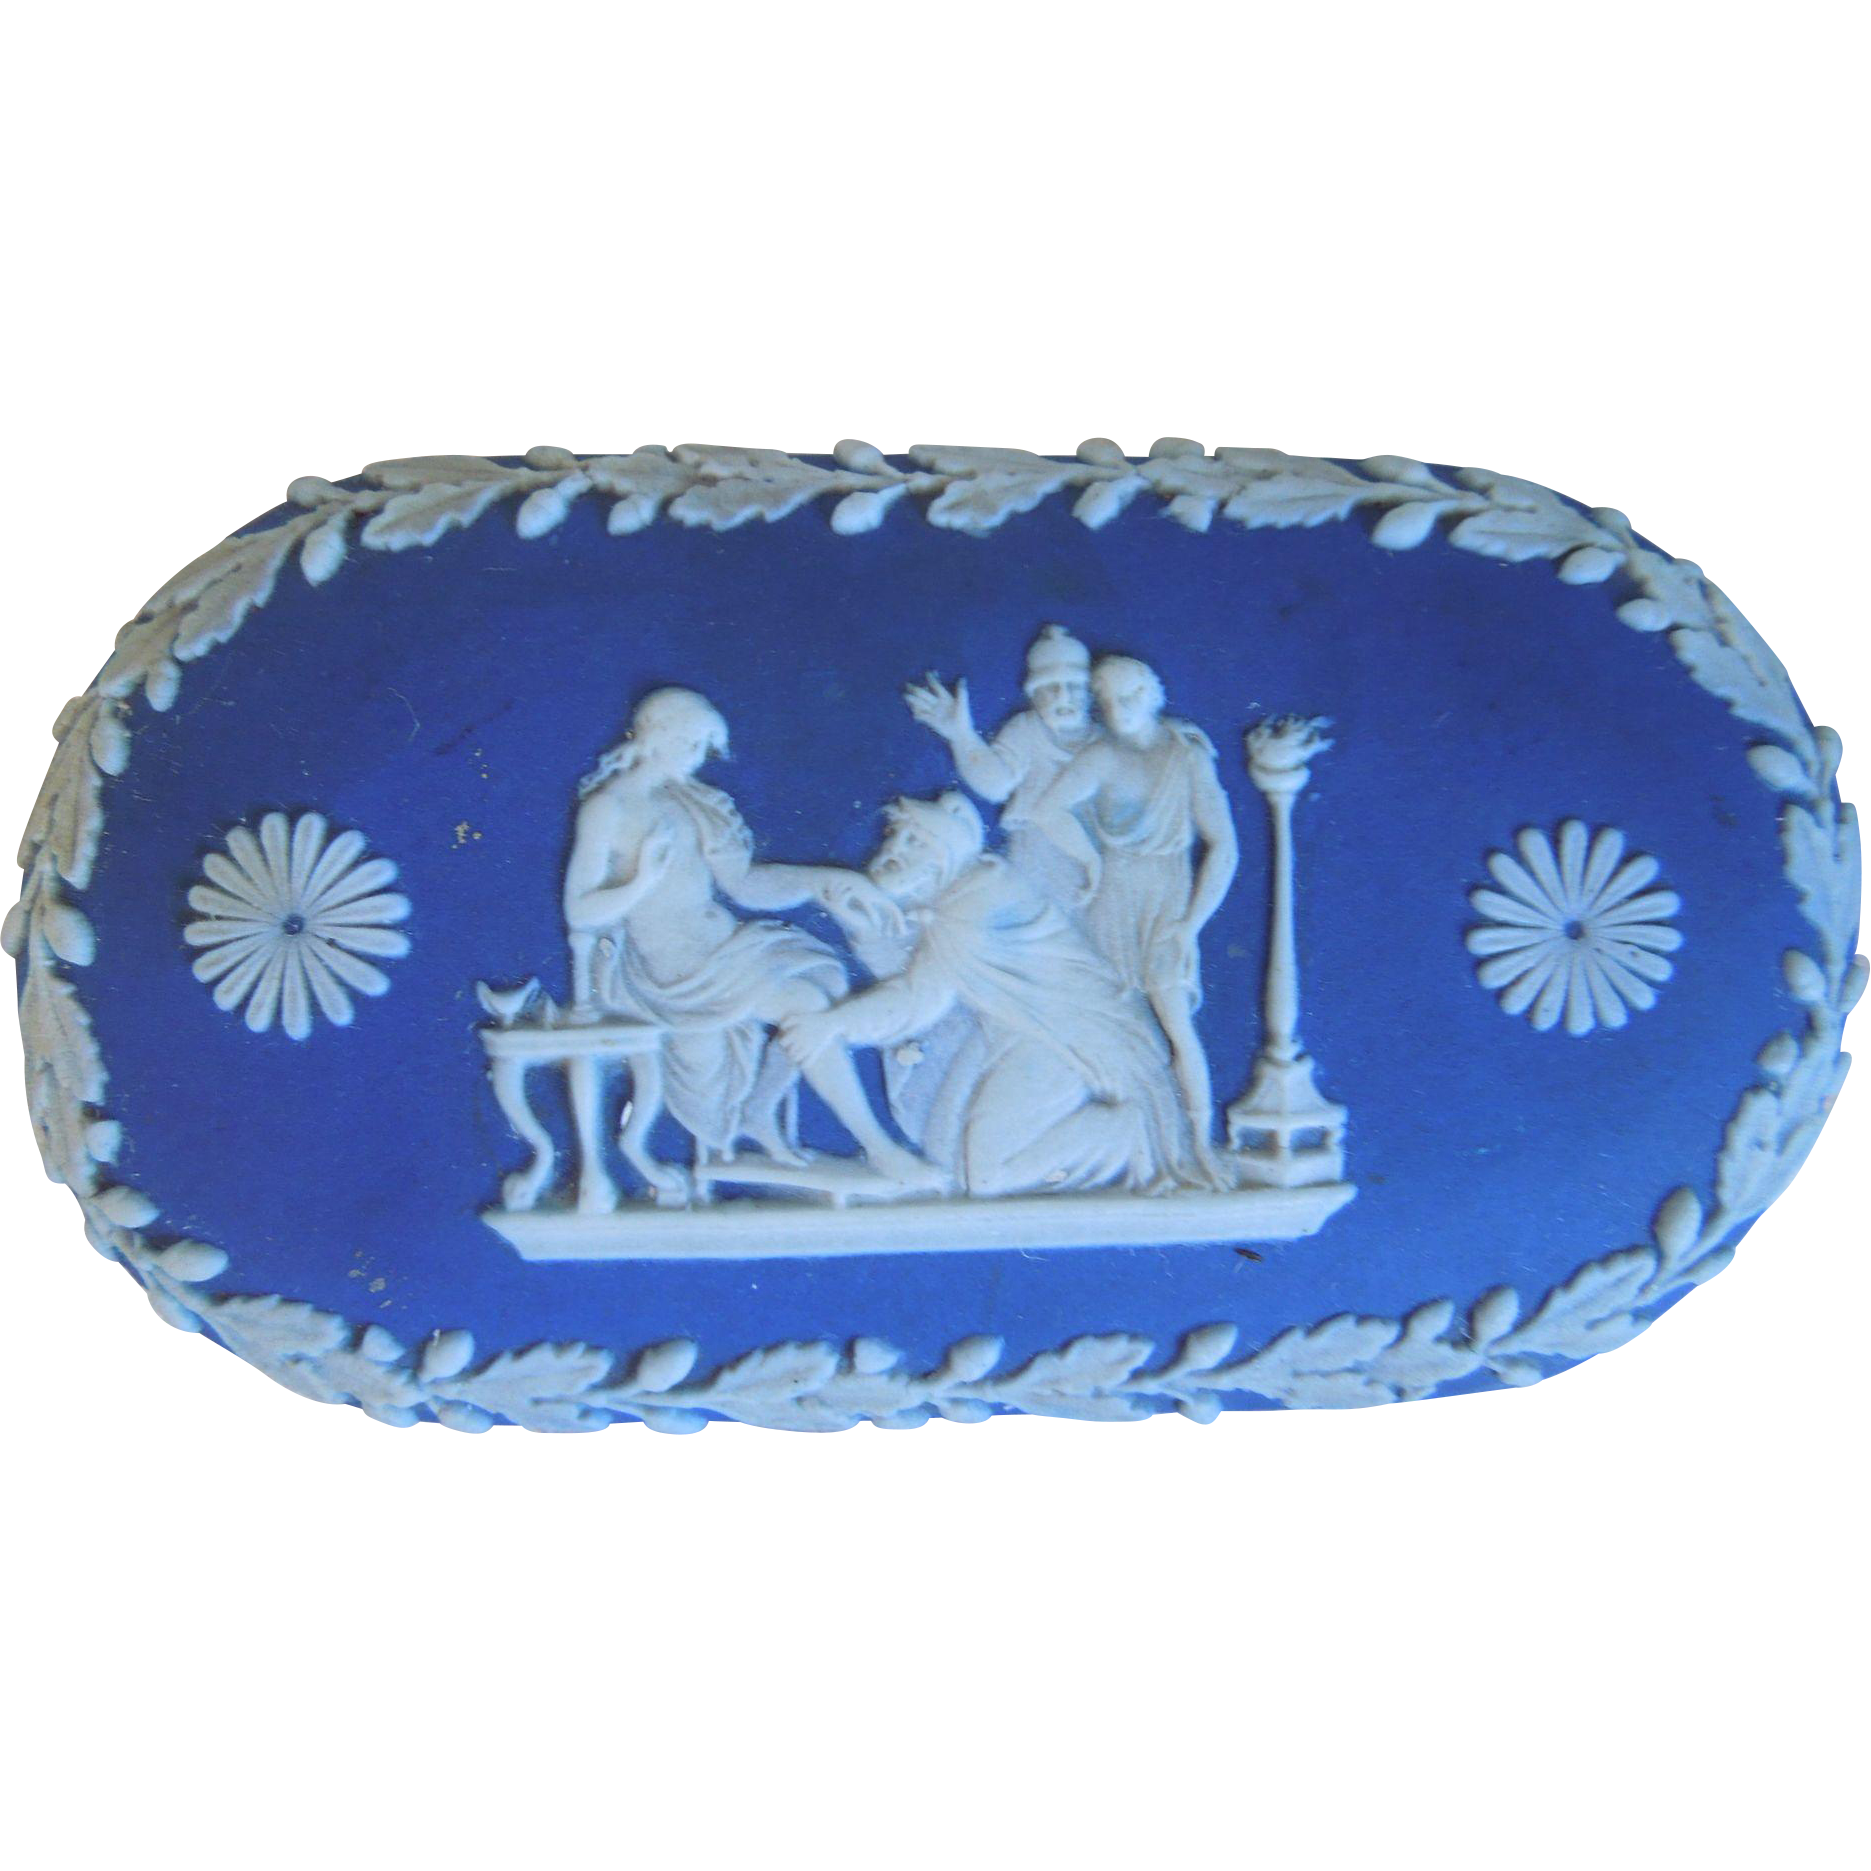 Antique Wedgwood Blue & White Neo-Classical Jasperware Trinket Box